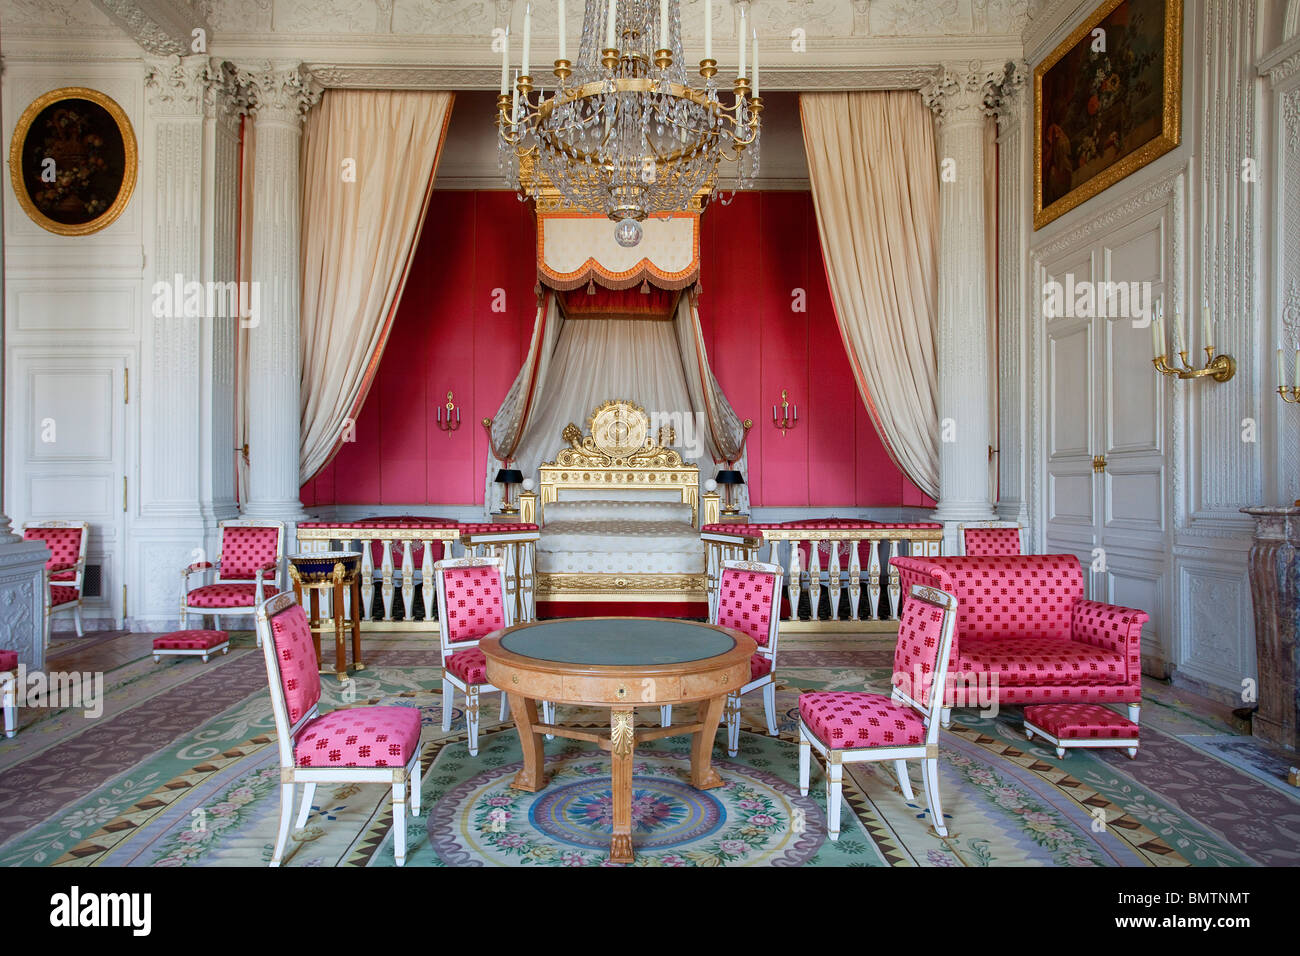 Chateau de Versailles the Grand Trianon the Kings